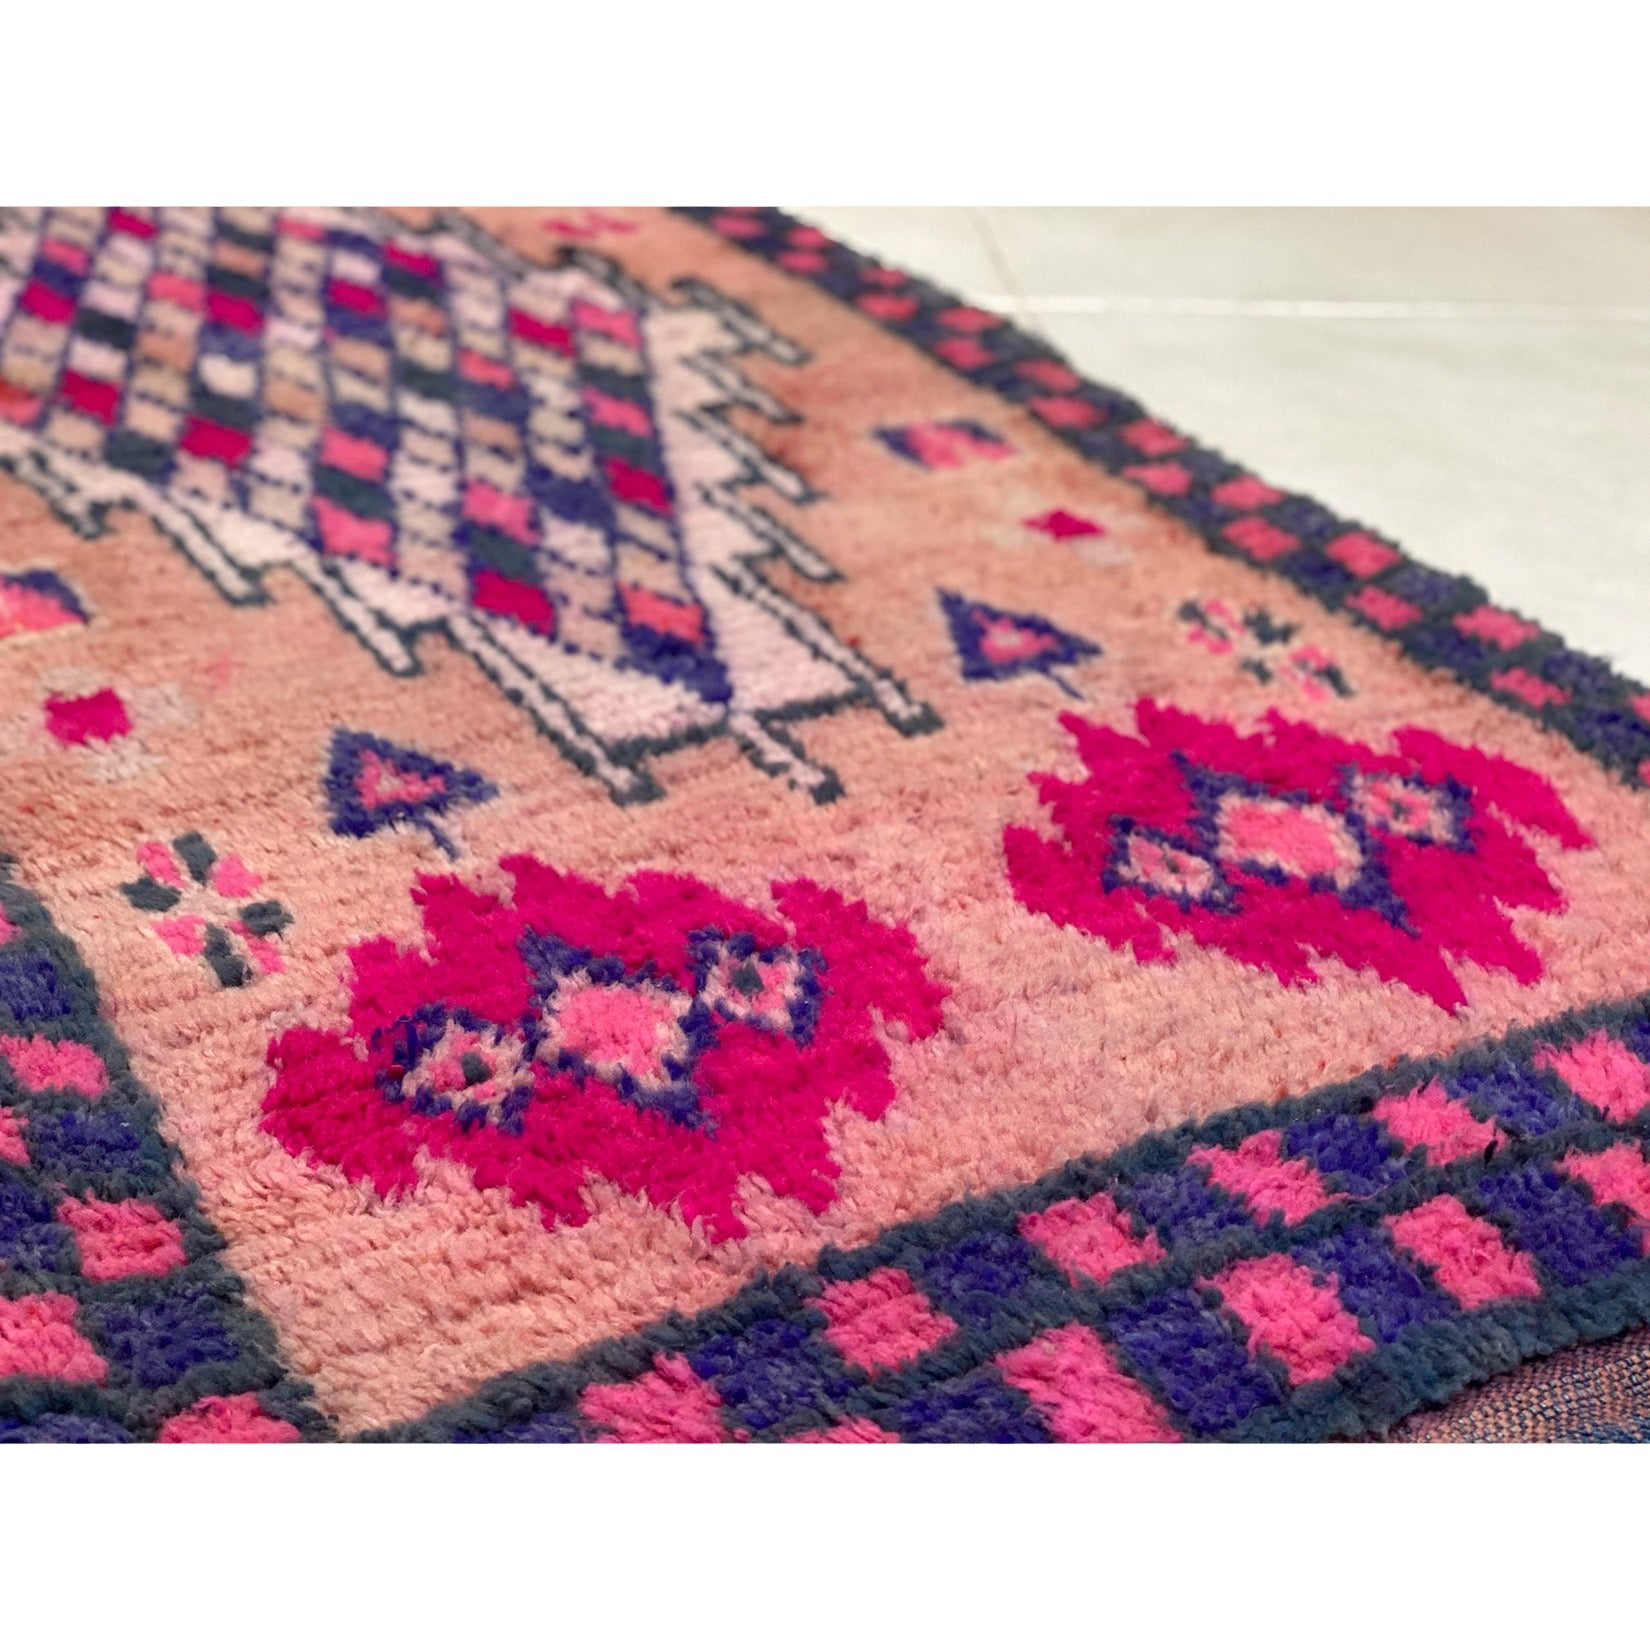 Pink and purple Moroccan kids' room rug - Kantara | Moroccan Rugs